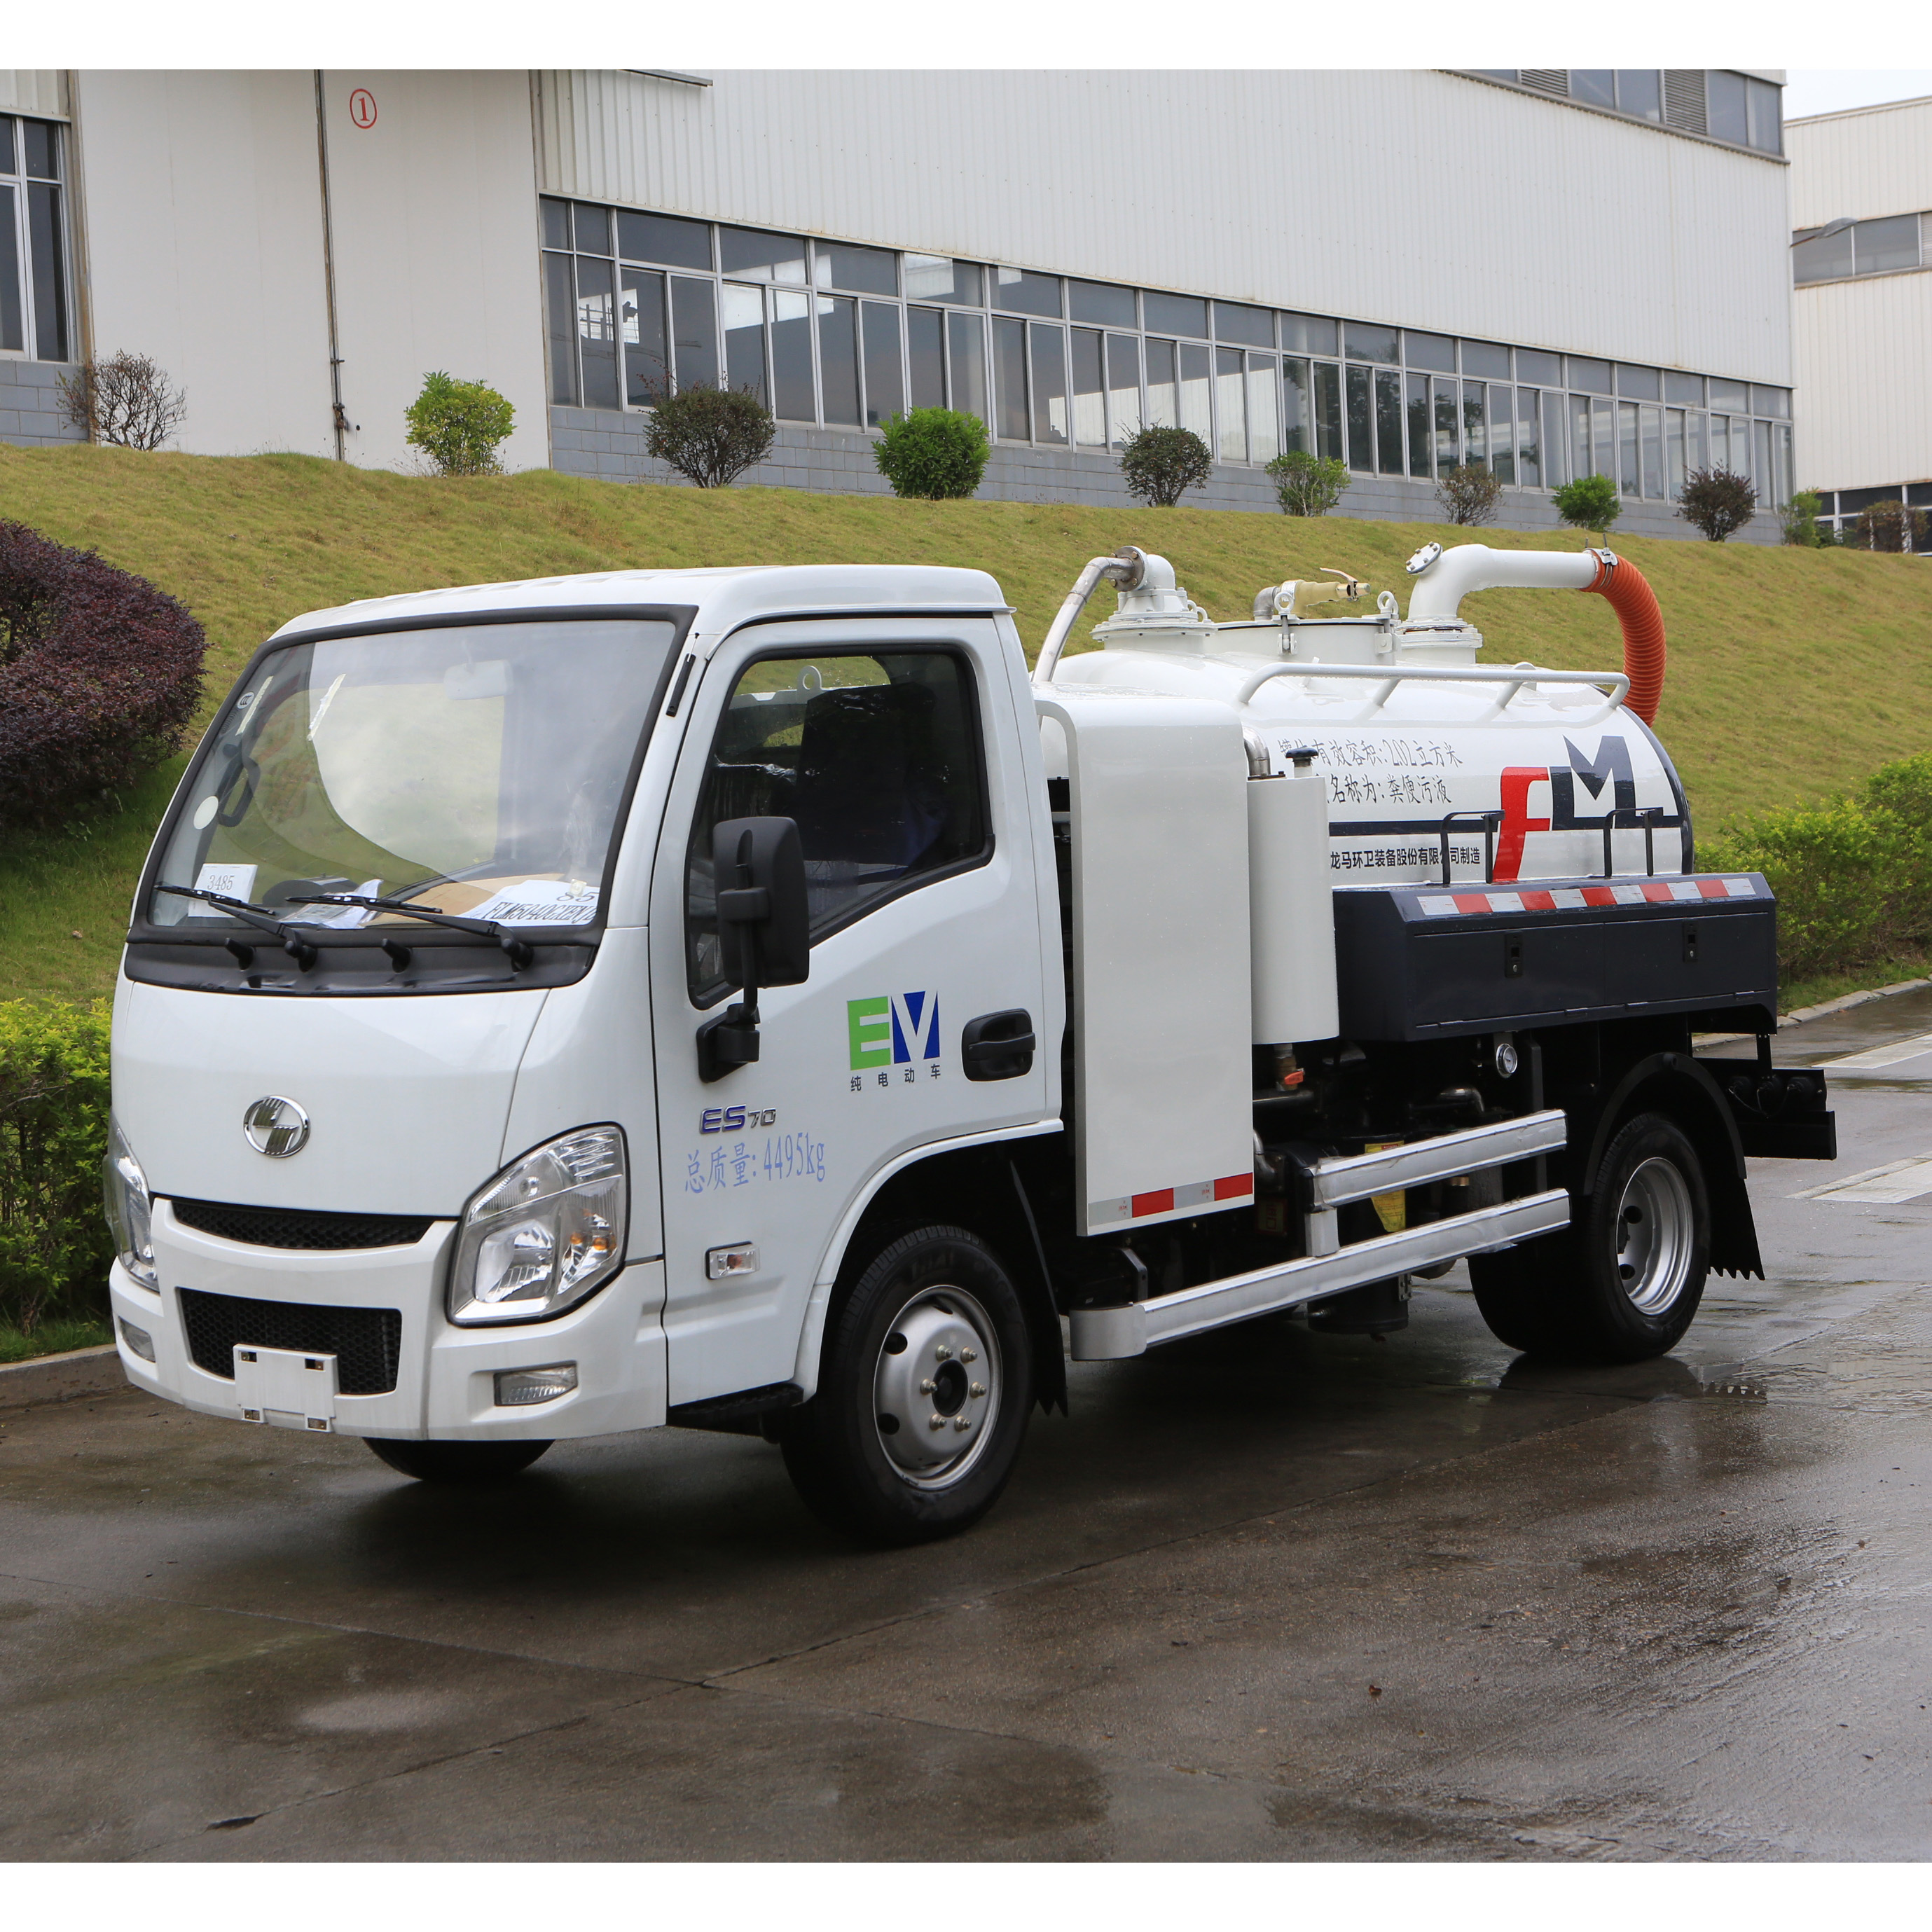 Functional configuration and features of FULONGMA's latest pure electric sewage suction truck